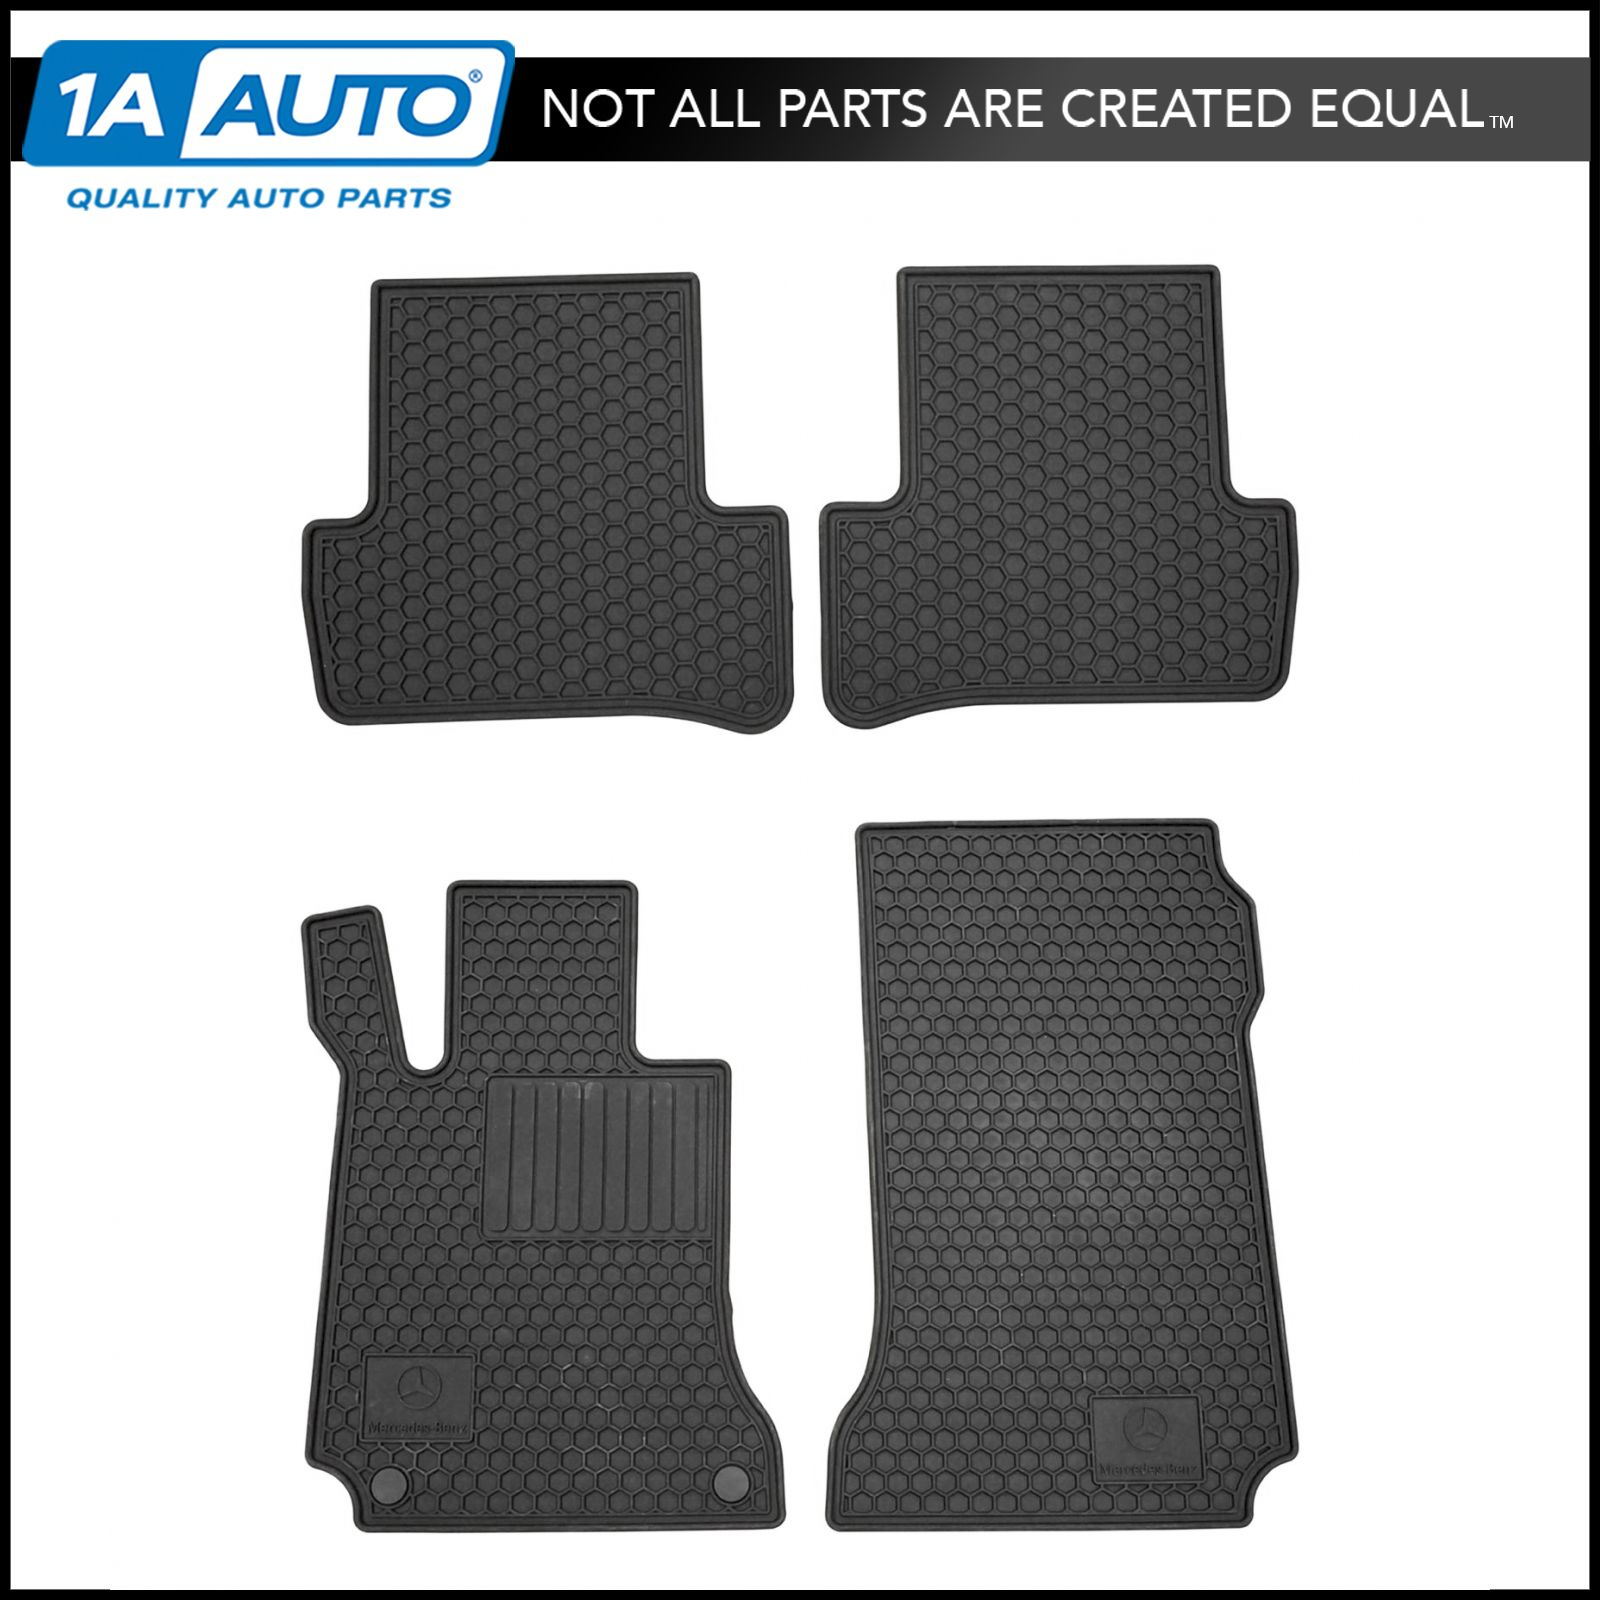 mercedes benz q6680665 floor mats black rubber set of 4 for c250 c300. Cars Review. Best American Auto & Cars Review